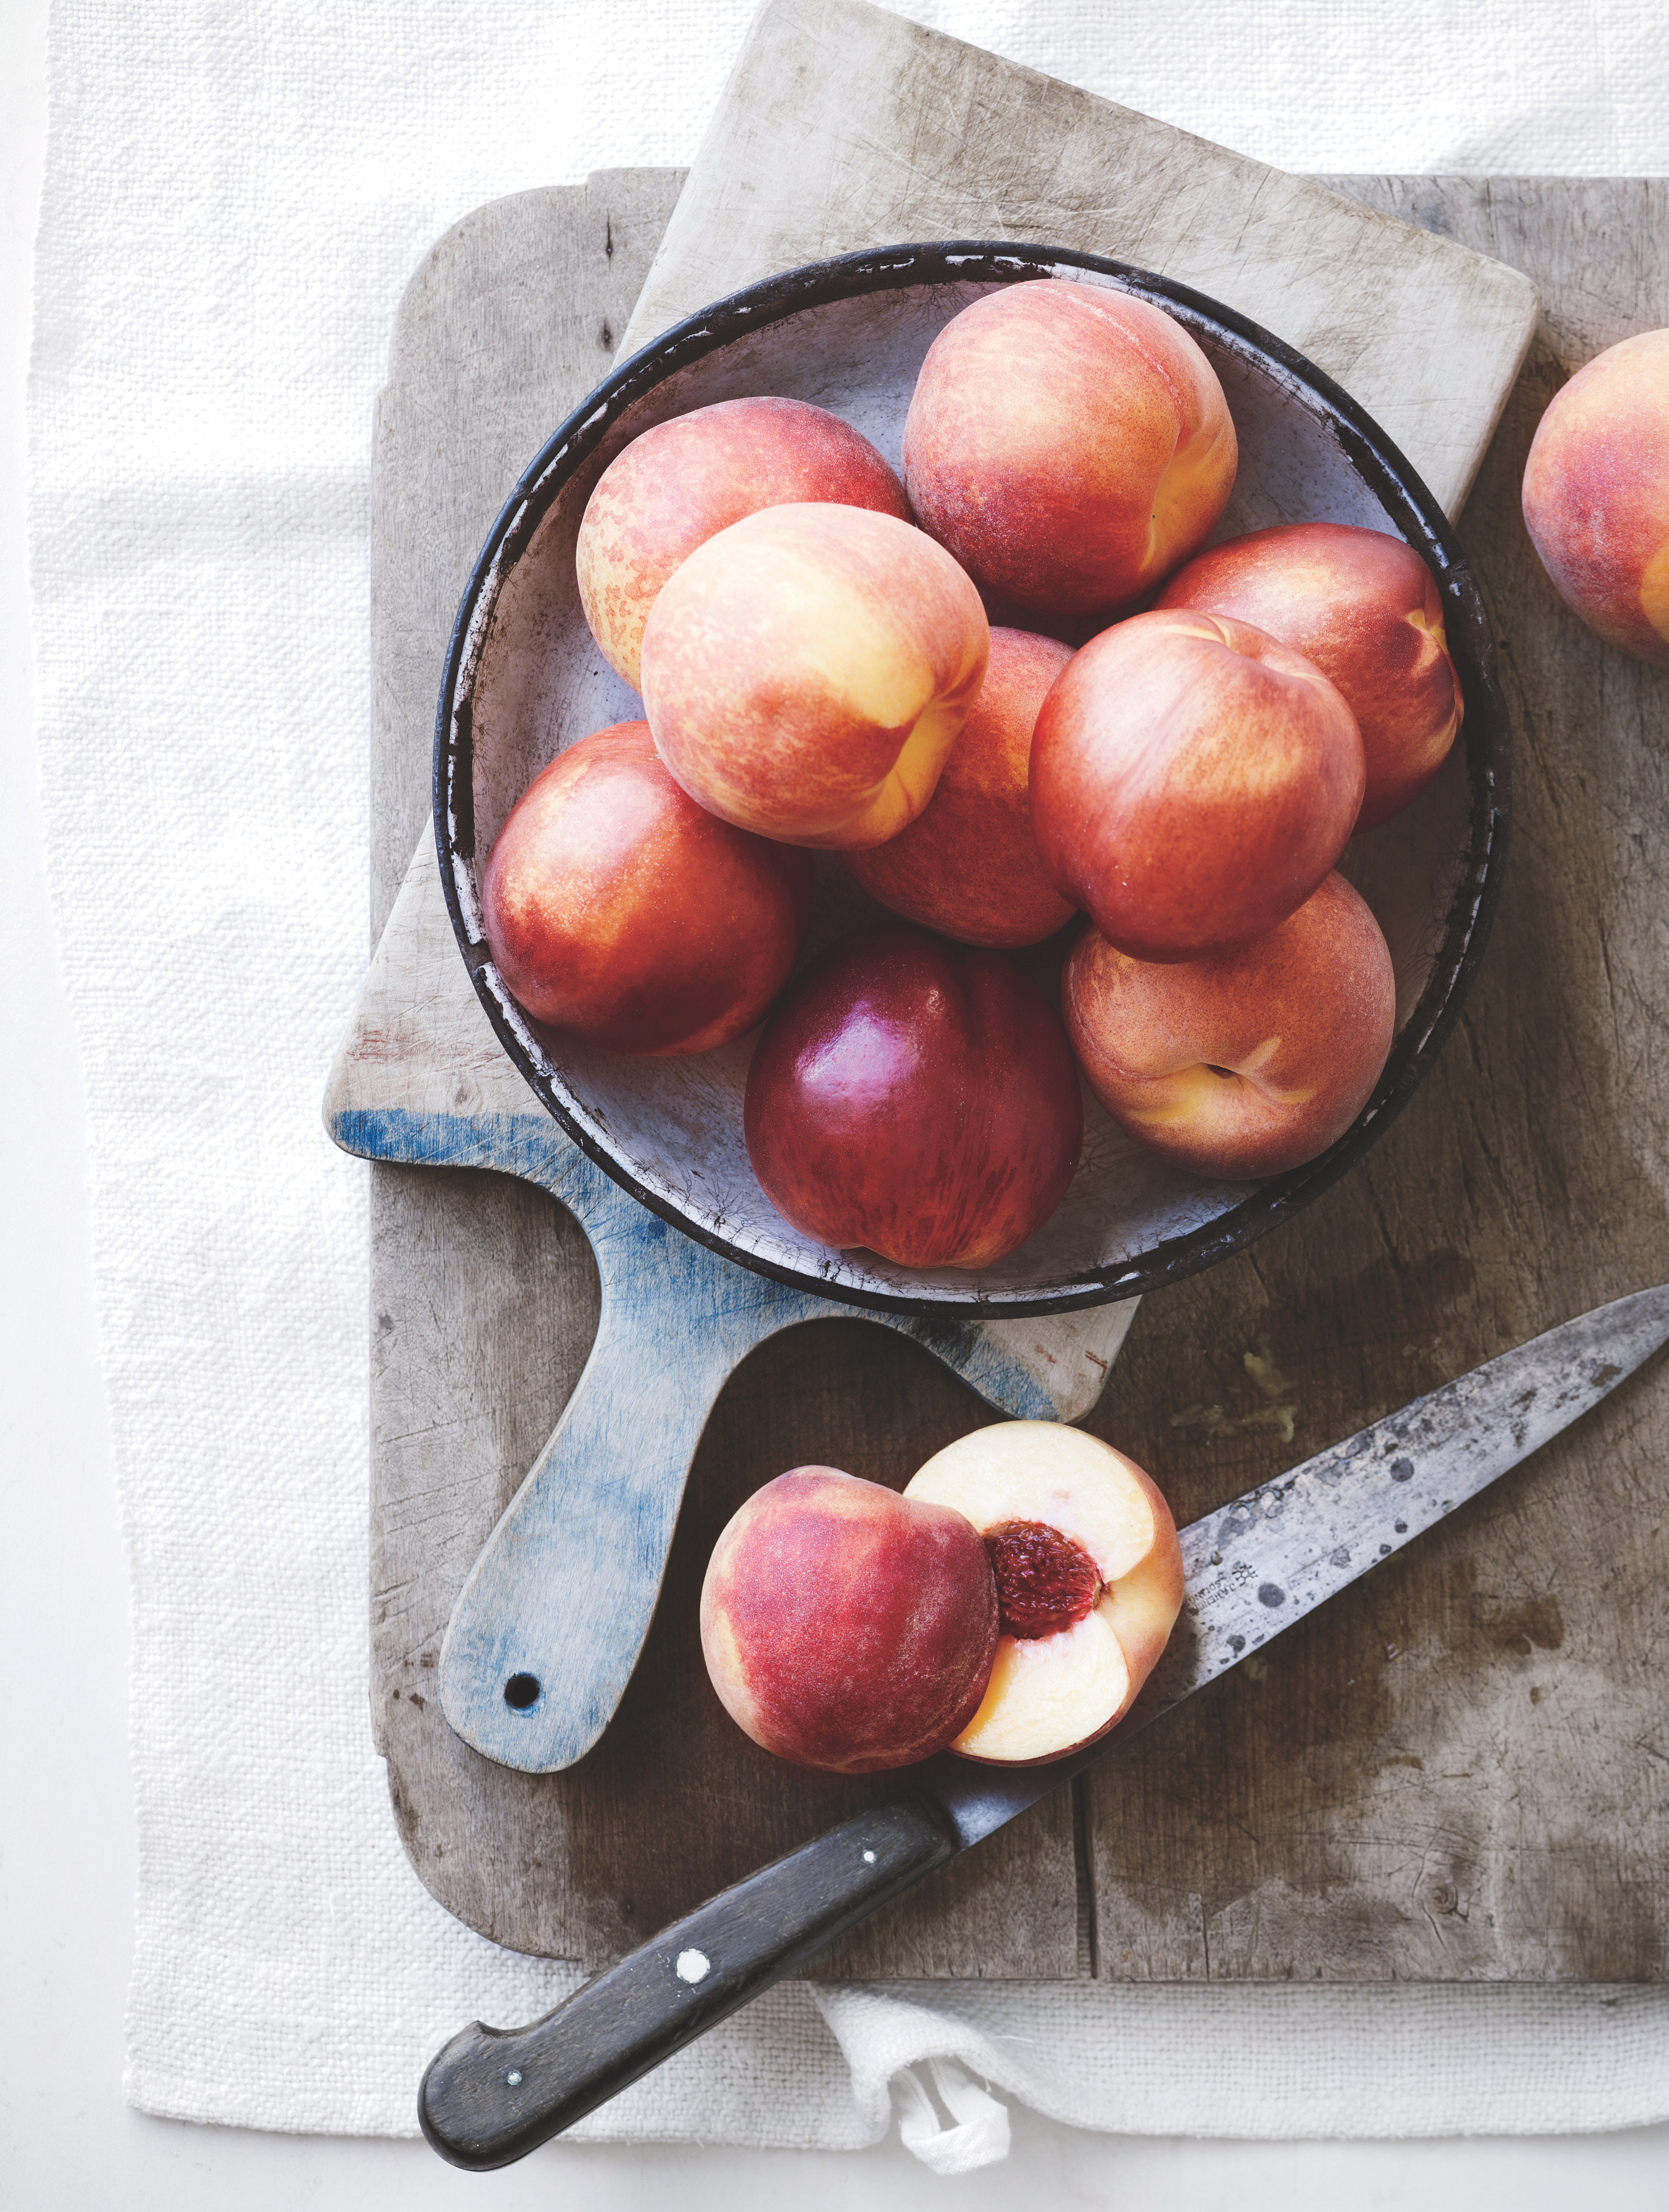 Nectarines with a knife